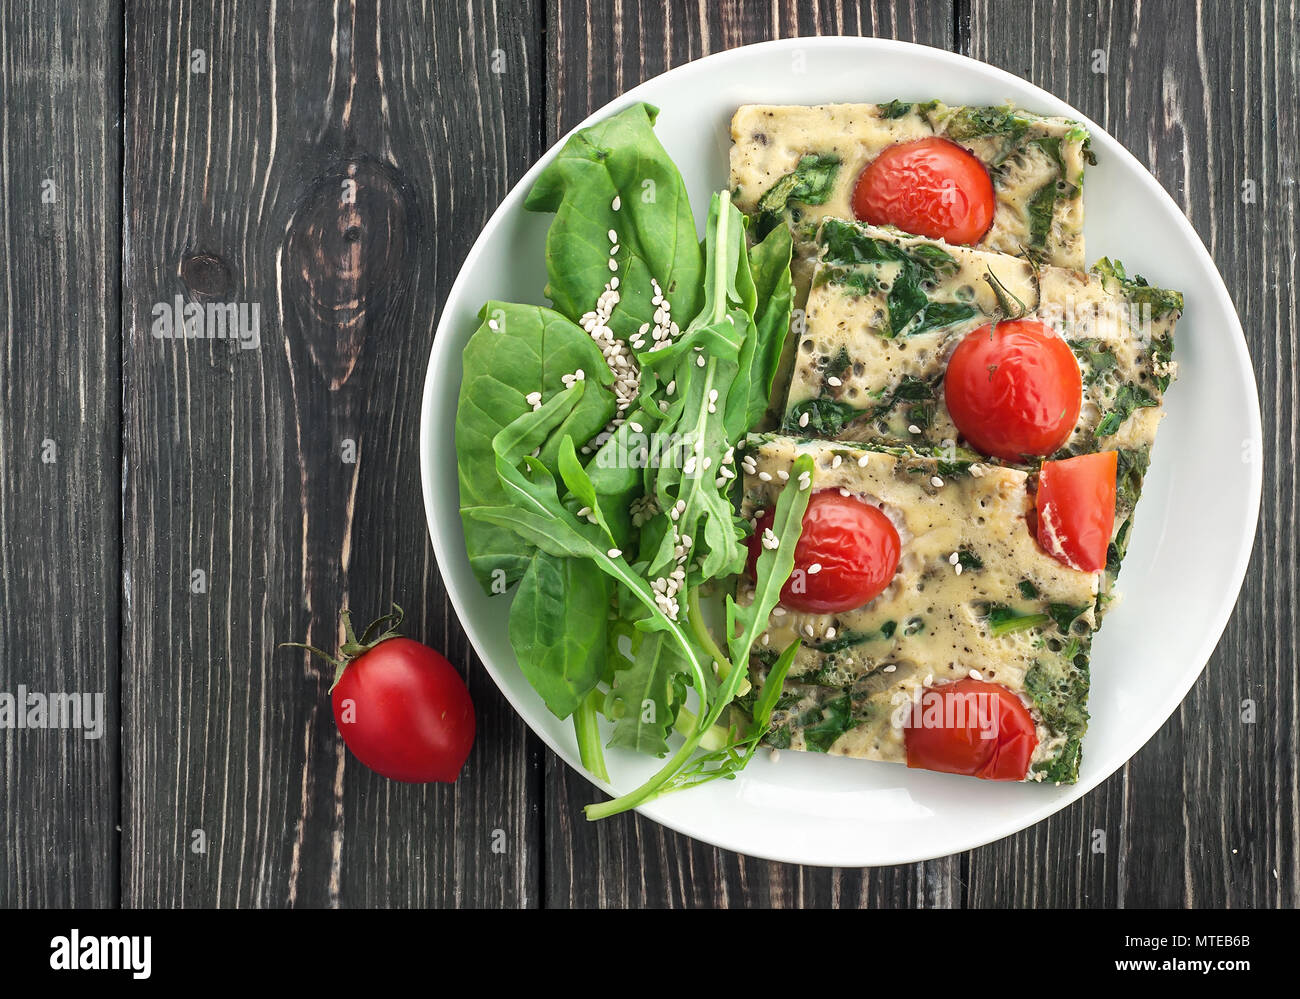 Frittata with spinach and tomatoes - Stock Image